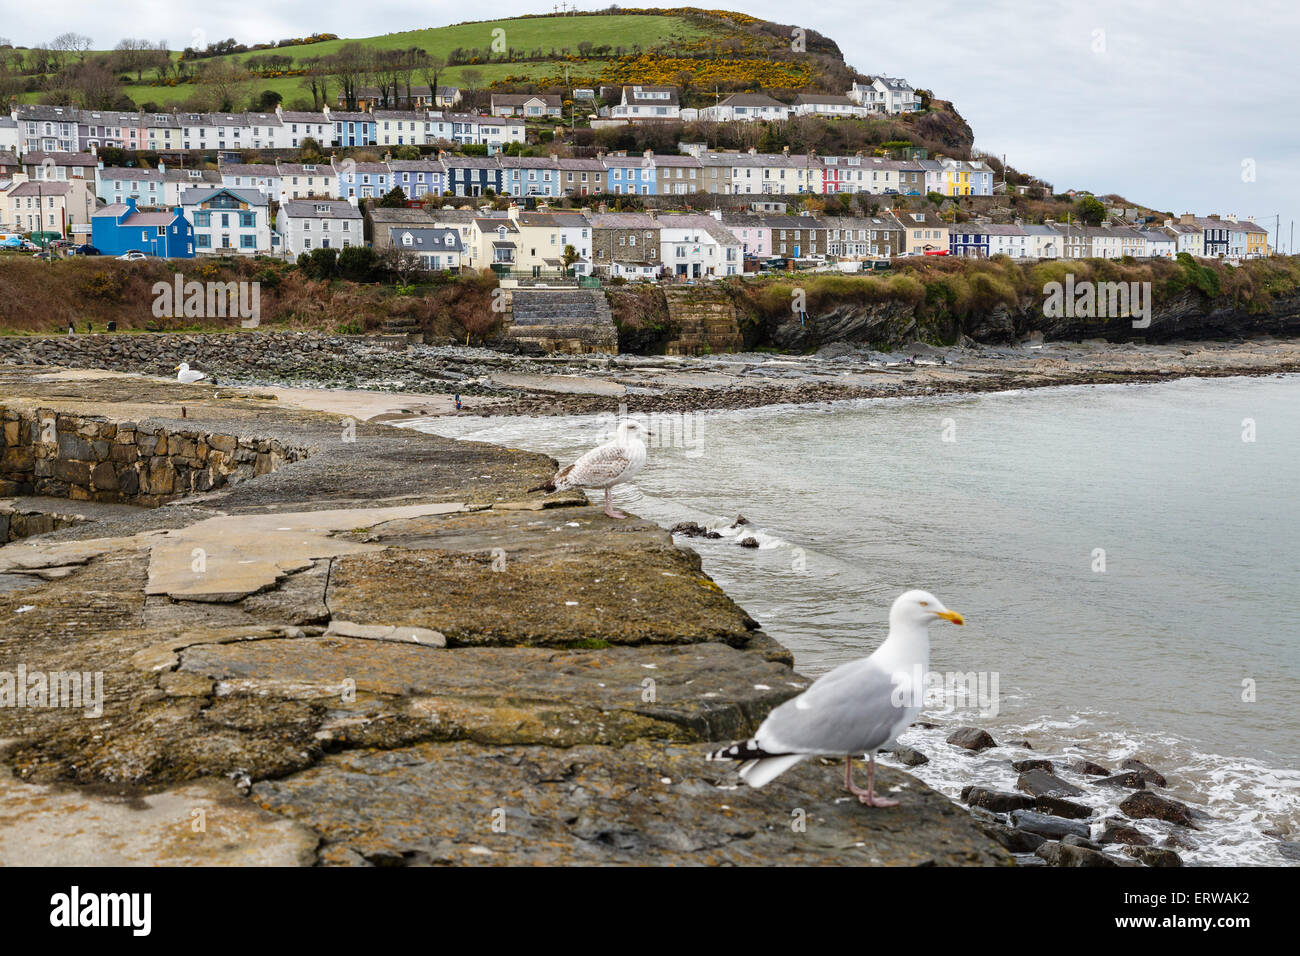 New Quay, Ceredigion, Wales - Stock Image